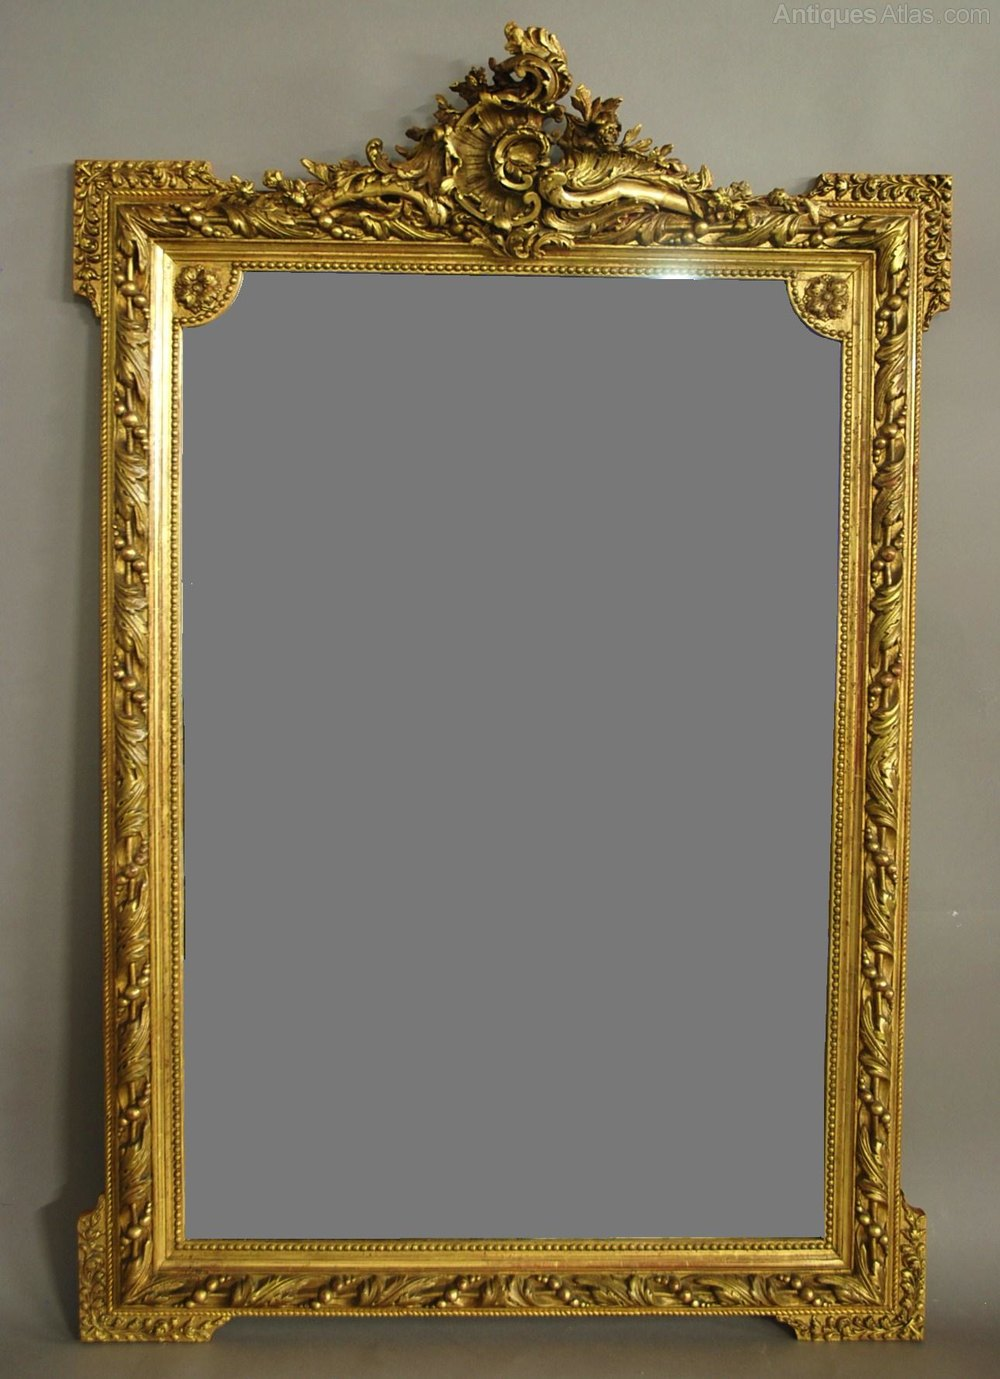 Antiques atlas large 19th century ornate french gilt mirror for Ornate mirror